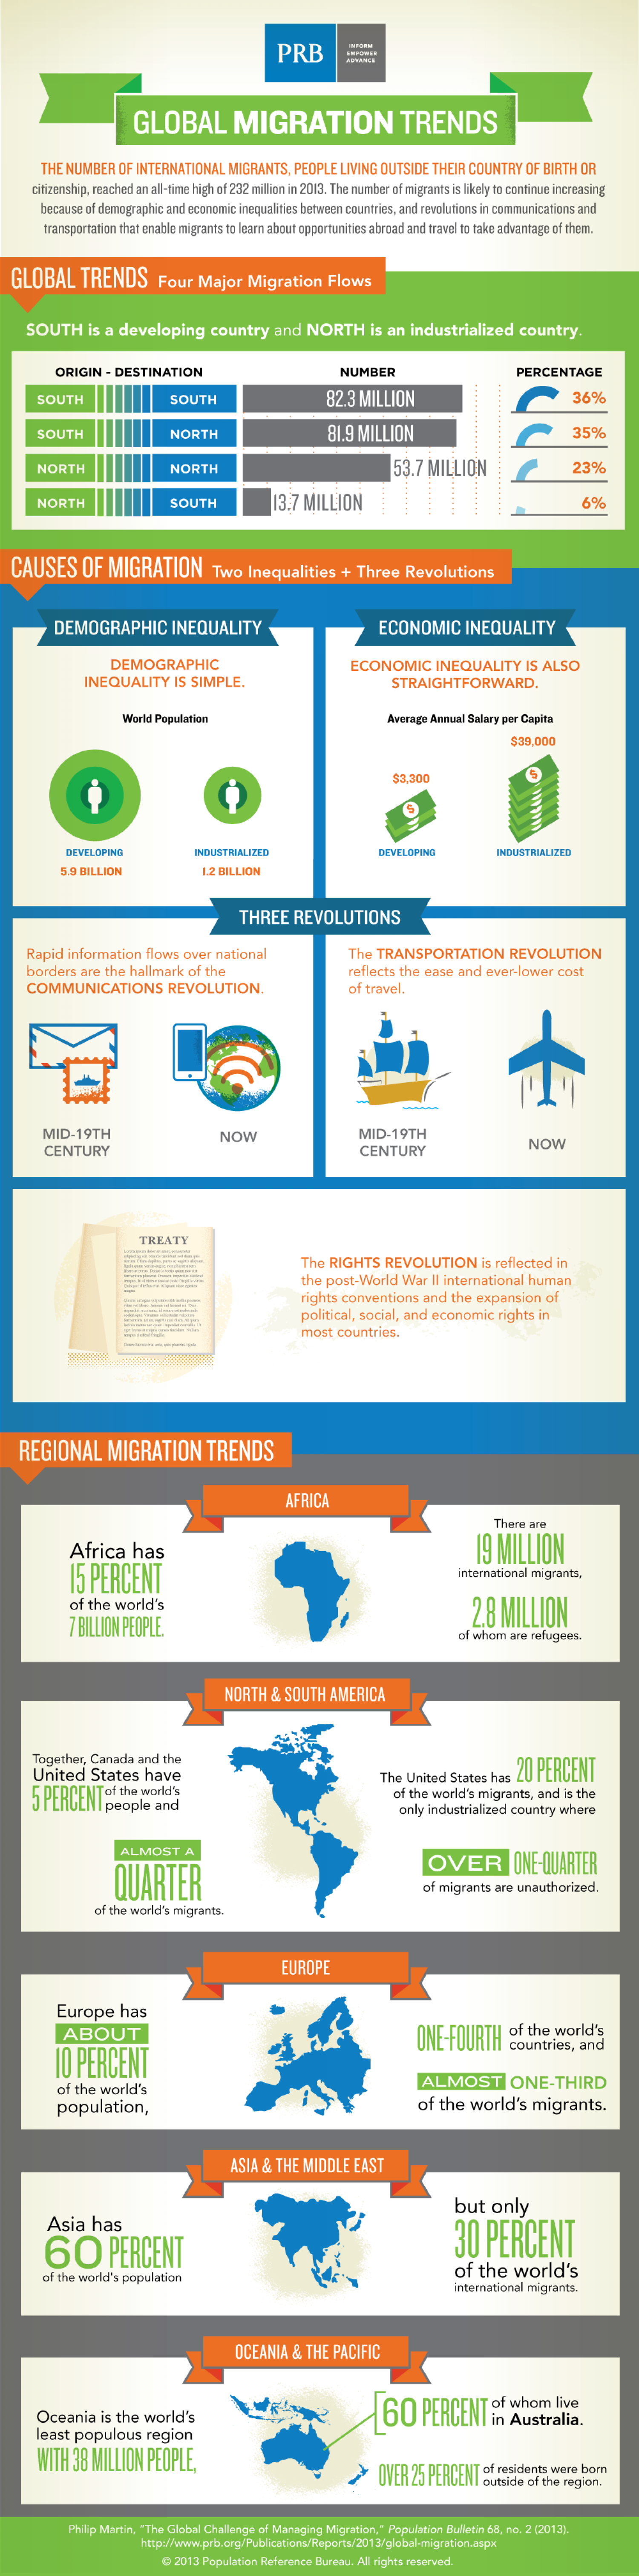 Global Migration Trends Infographic